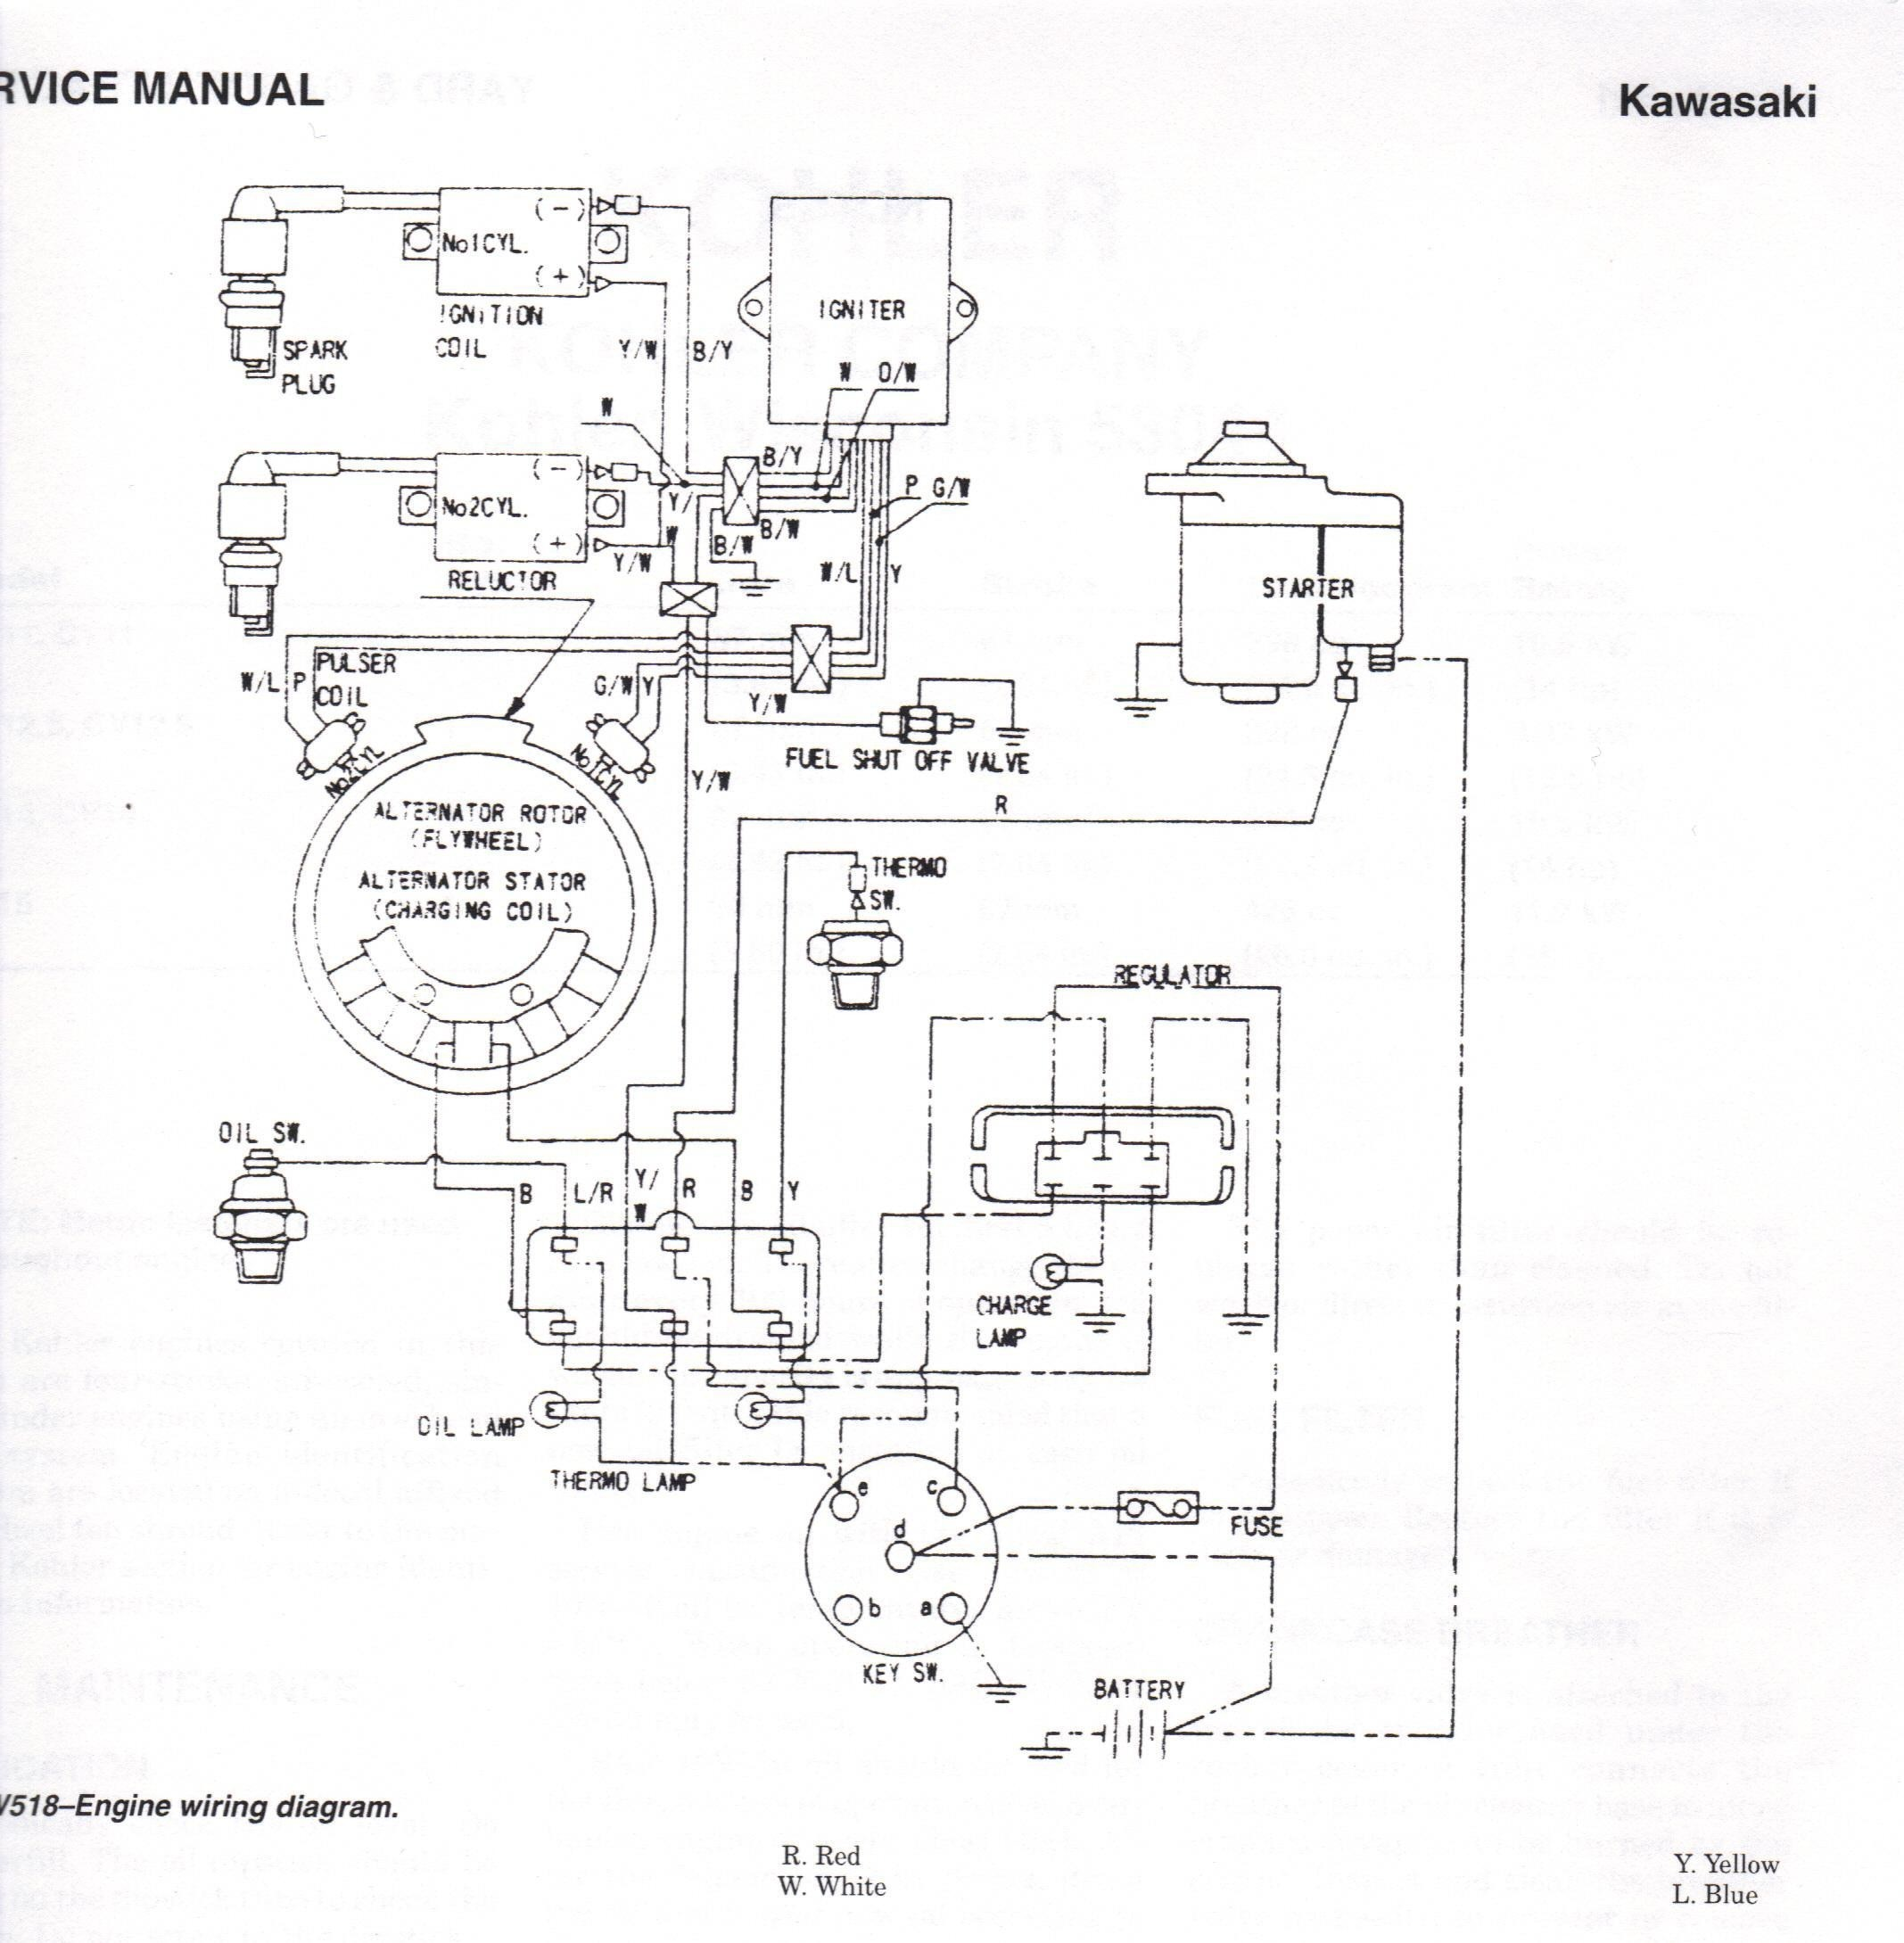 john deere gator wiring diagram wiring diagram image rh mainetreasurechest com wiring diagram for jd gator turf John Deere Gator Motor Diagram